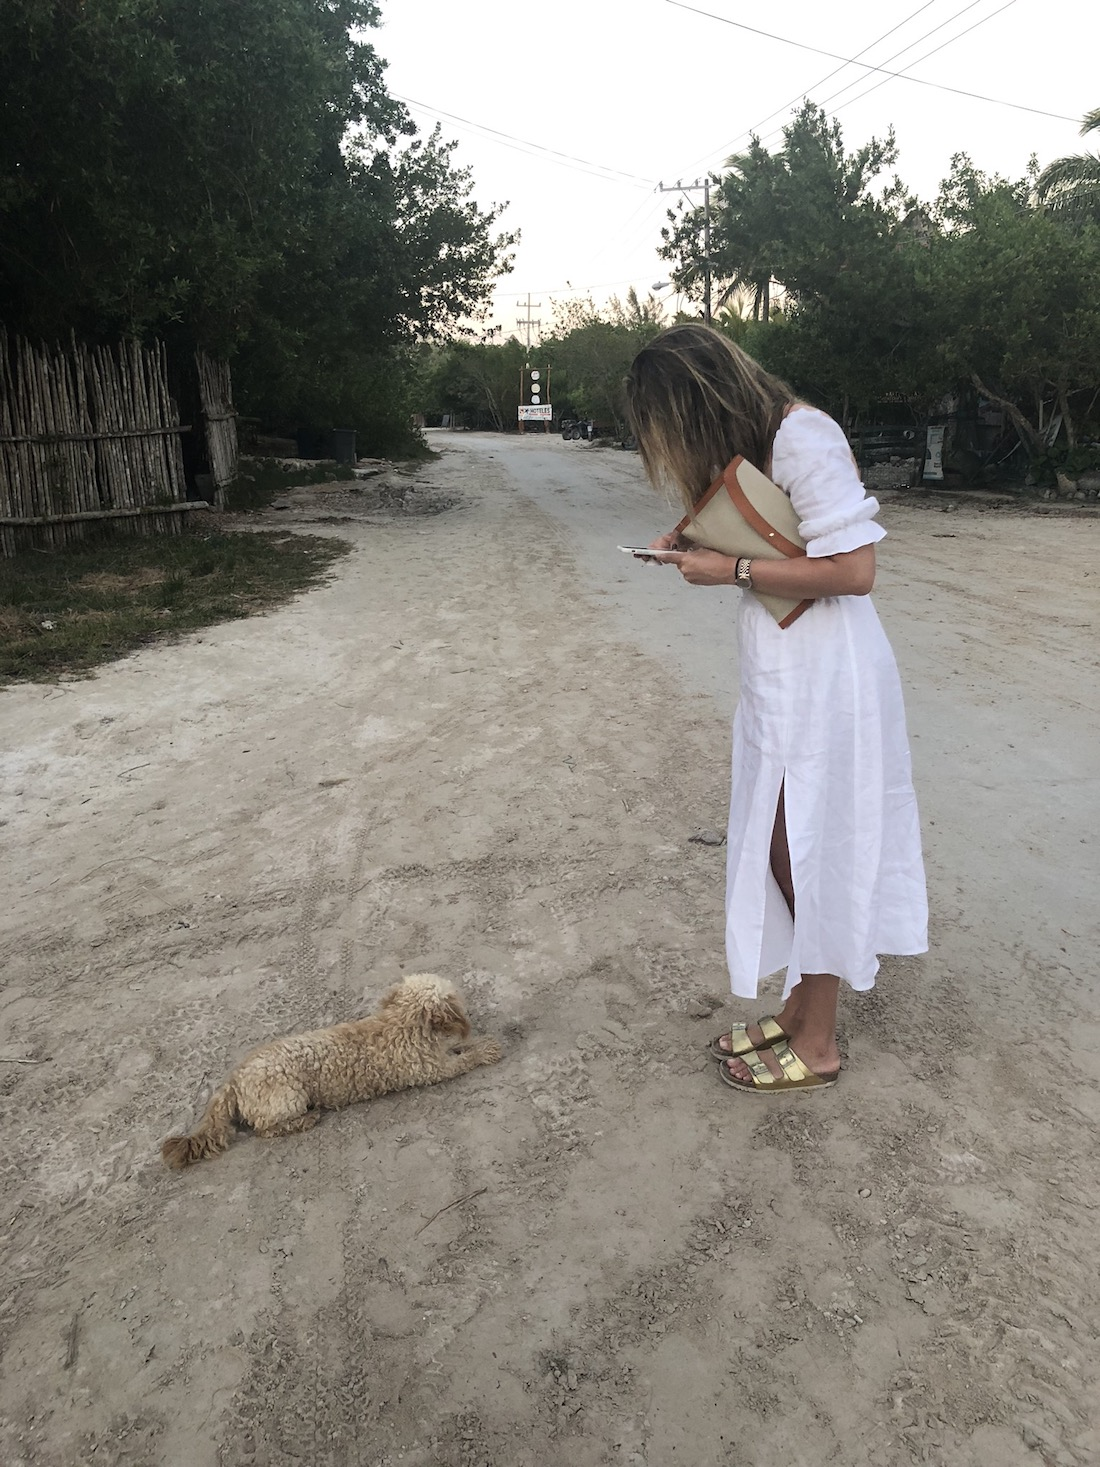 Grace is wearing a white maxi dress in Isla Holbox